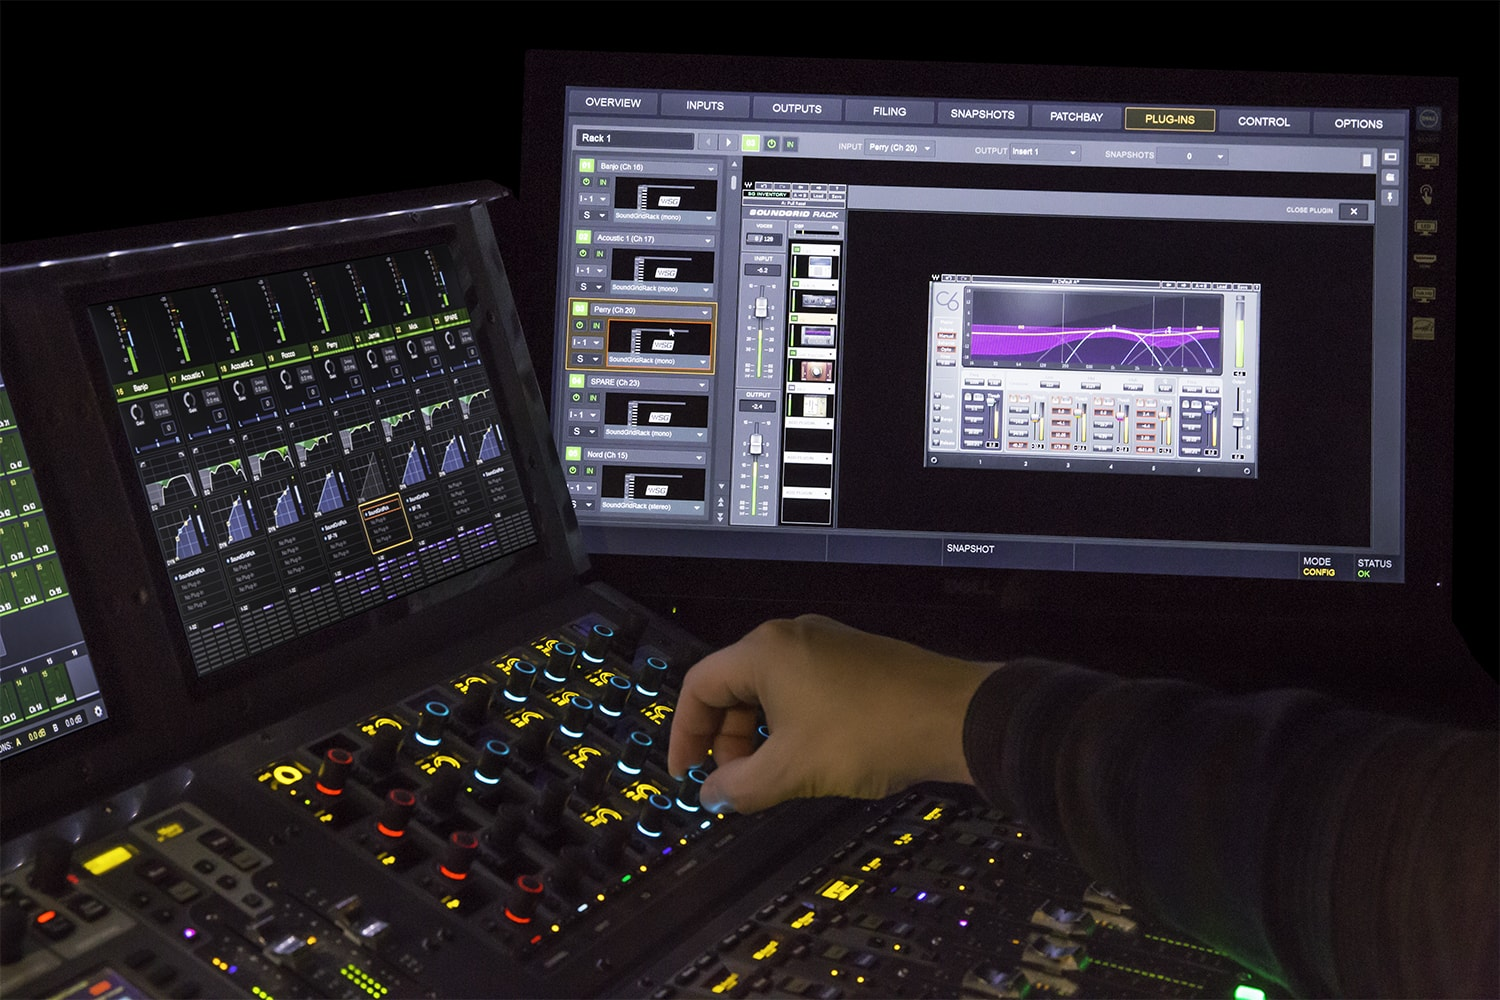 Controlling Waves plugins in Avid VENUE digital audio mixers